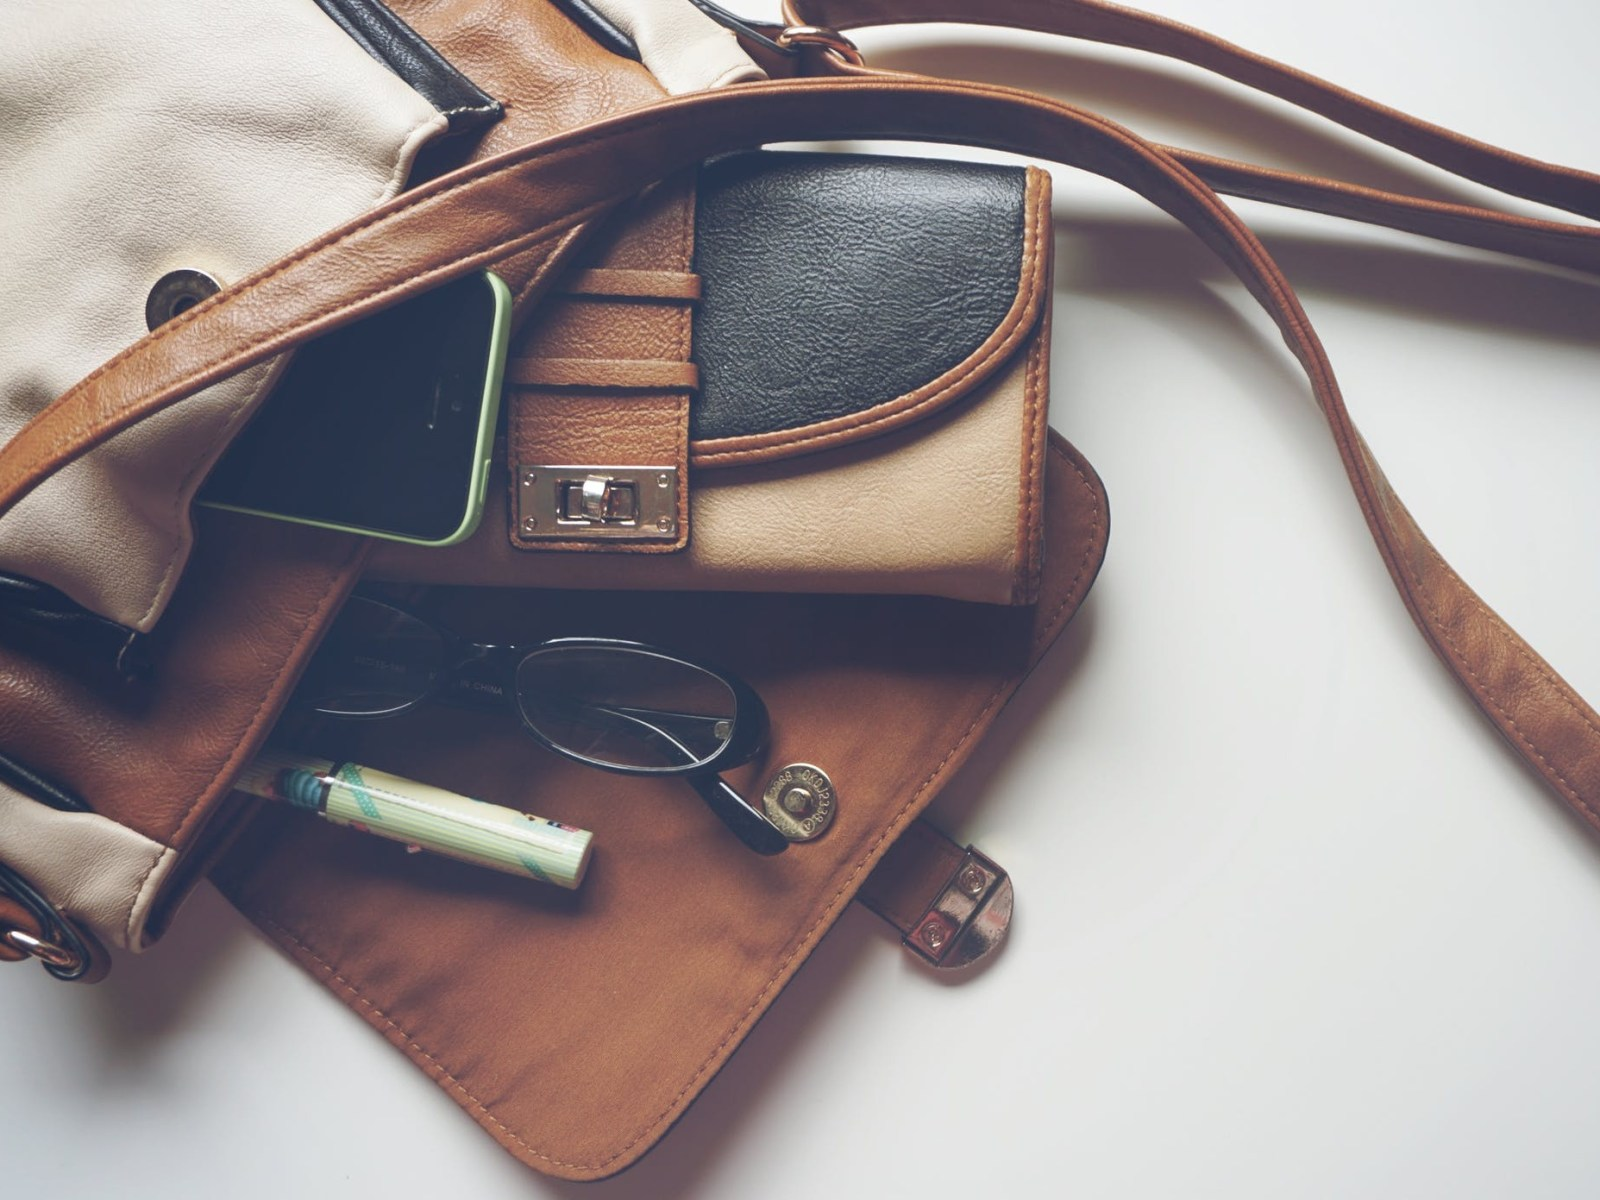 Having struggles finding the right bag for the summer? This list of 10 trendy crossbody bags will help you to make up your mind.